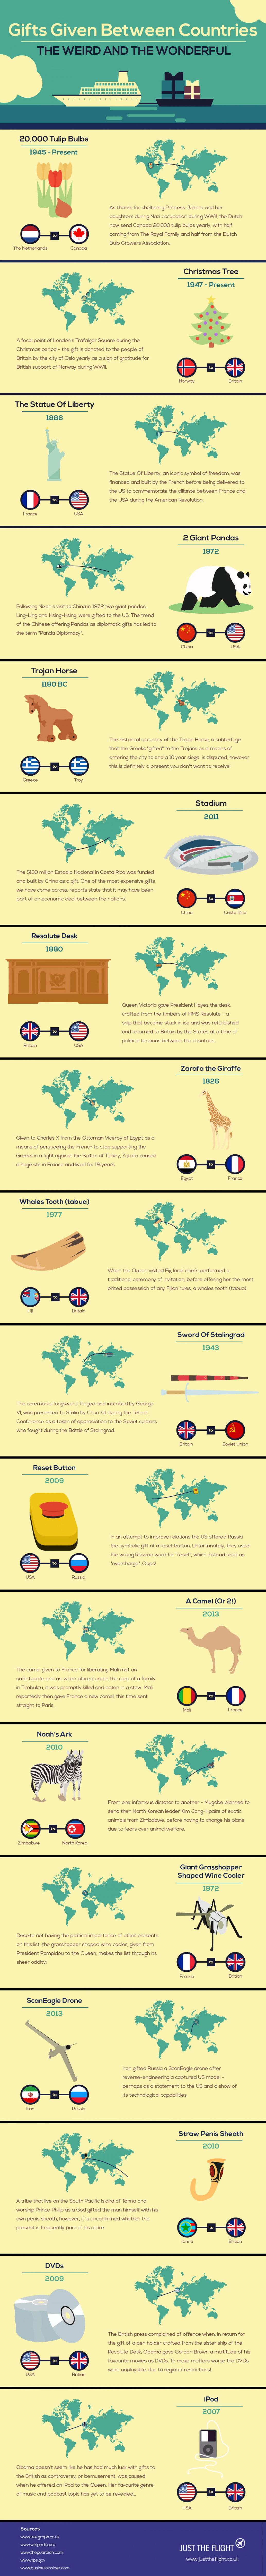 Gifts Given Between Countries - The Weird and the Wonderful! Infographic